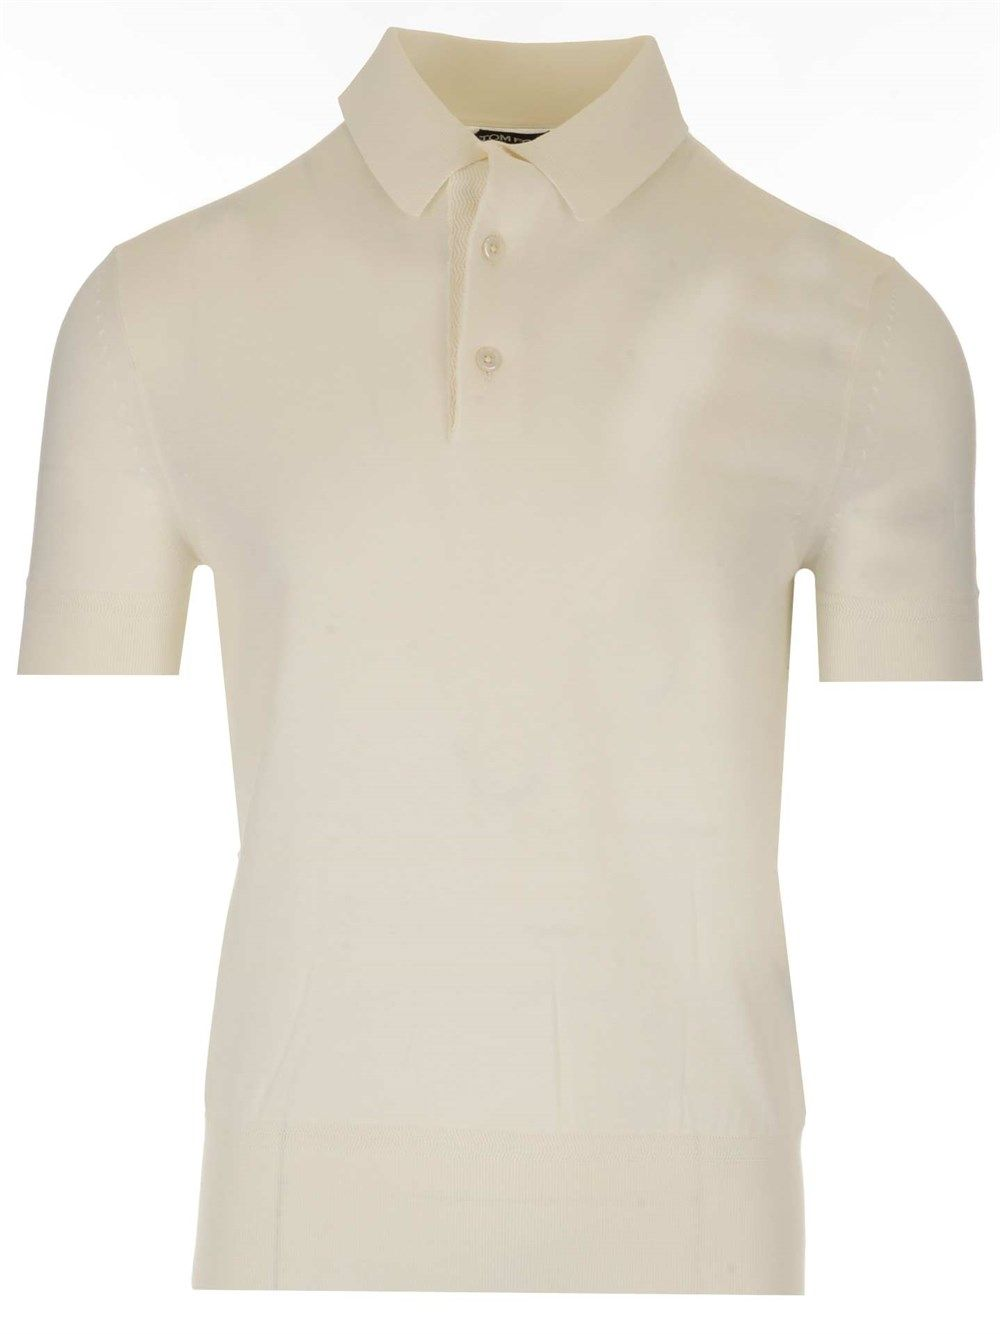 Tom Ford Cottons TOM FORD MEN'S WHITE OTHER MATERIALS POLO SHIRT